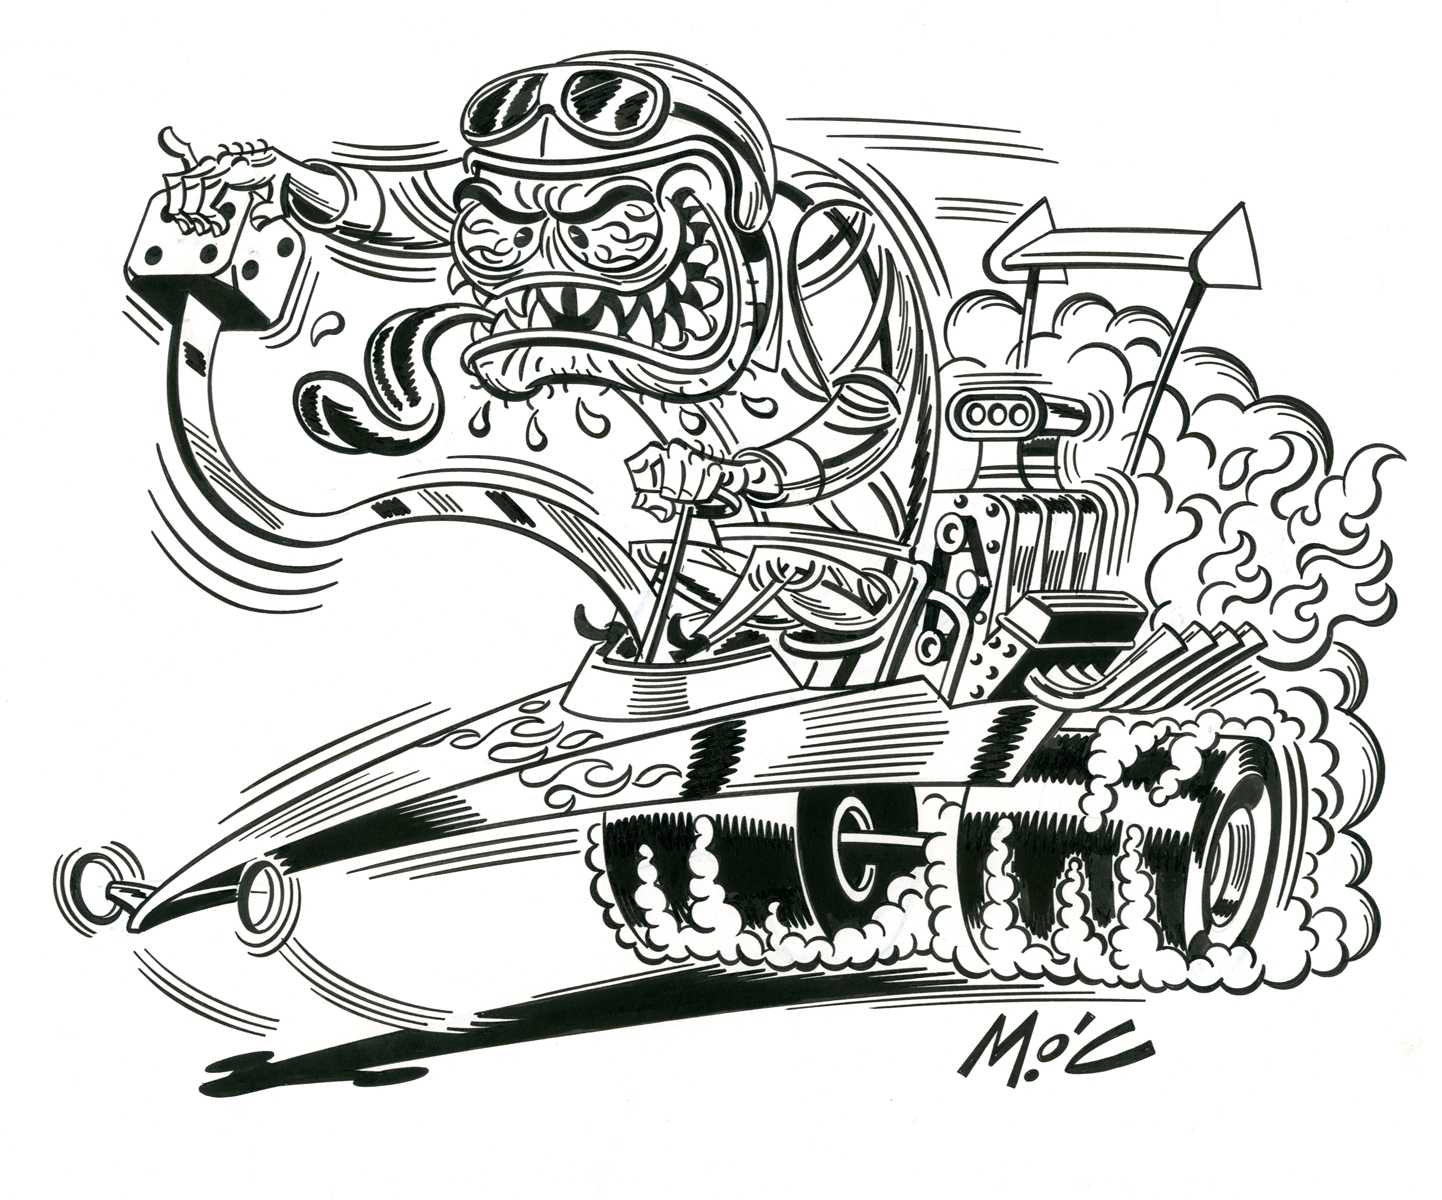 Hot Rod Engine Illustration